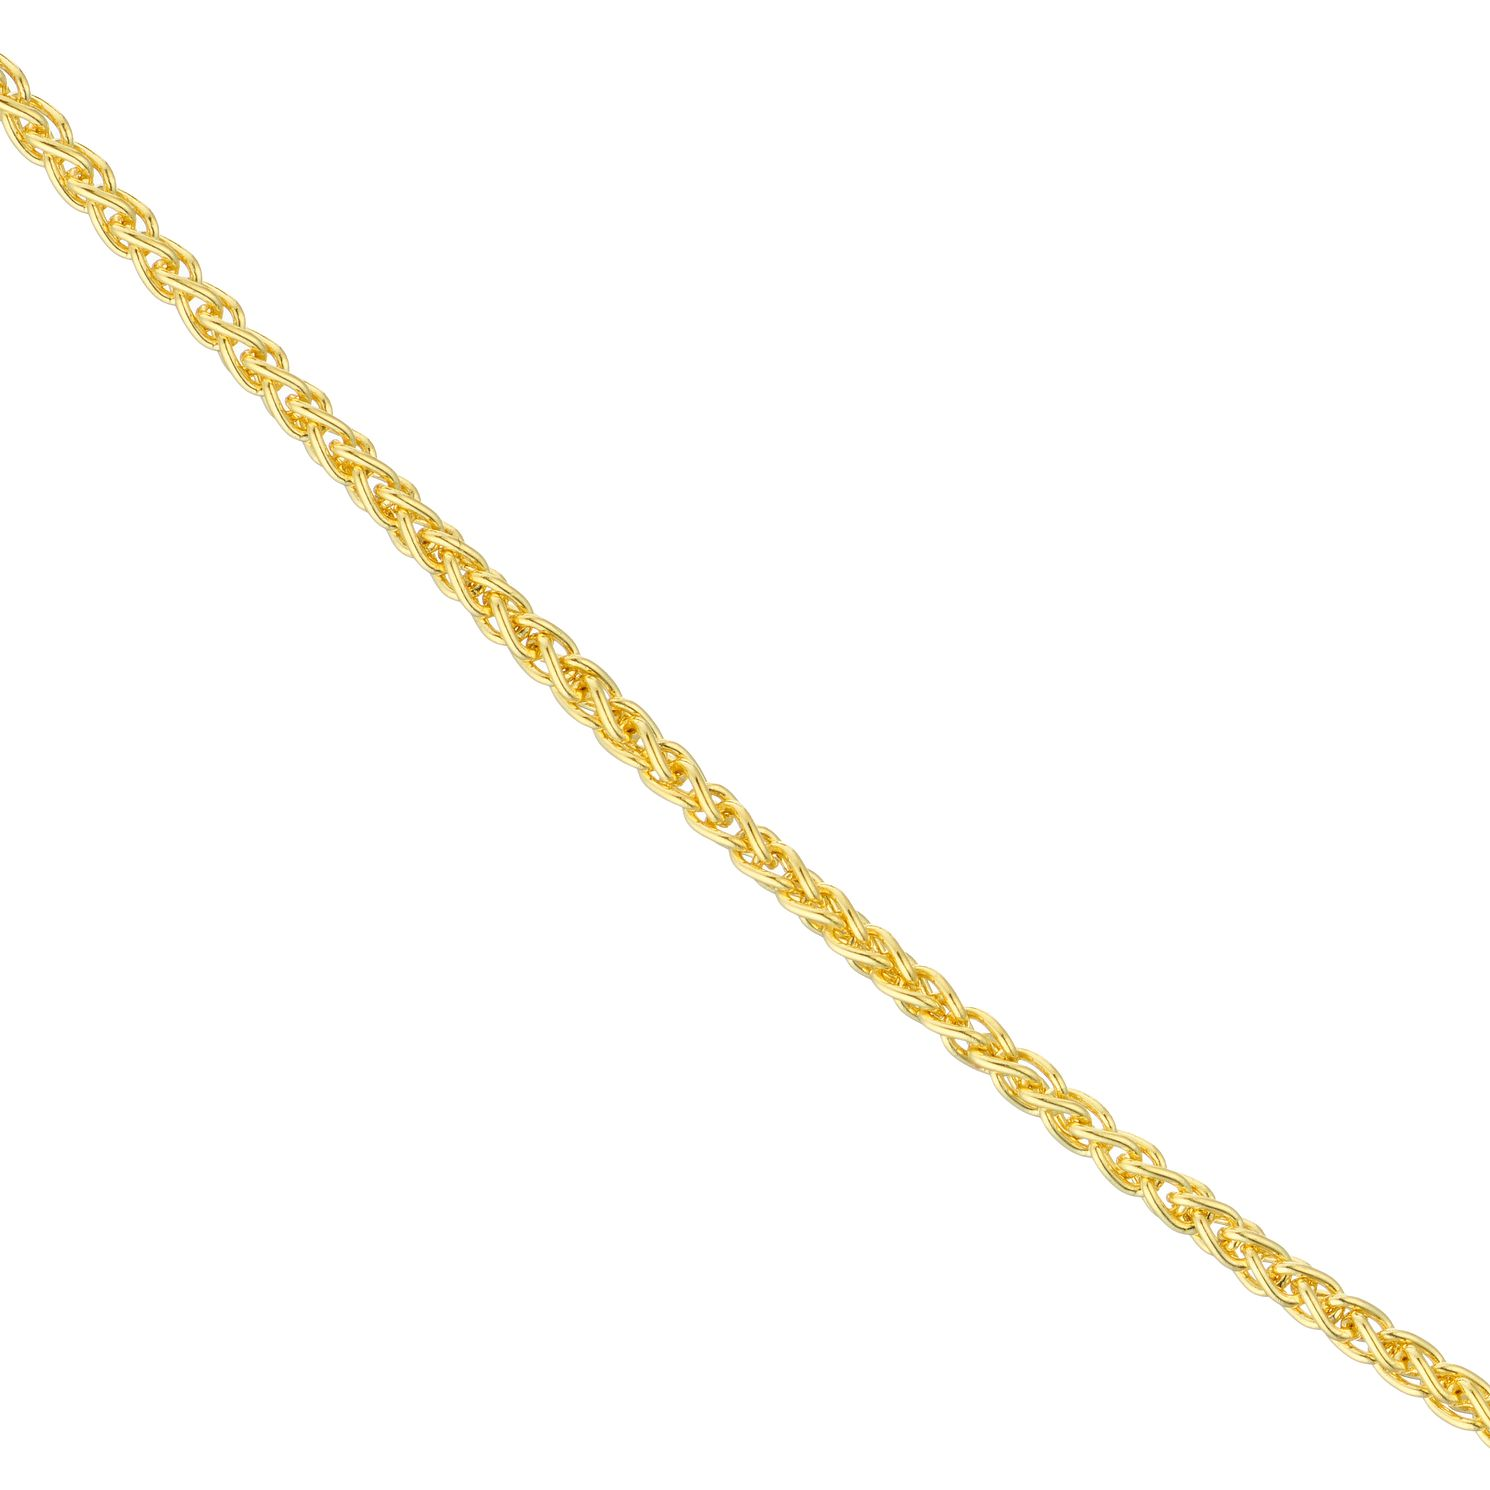 18ct Yellow Gold 18 inches Spiga Chain Necklace - Product number 4681819